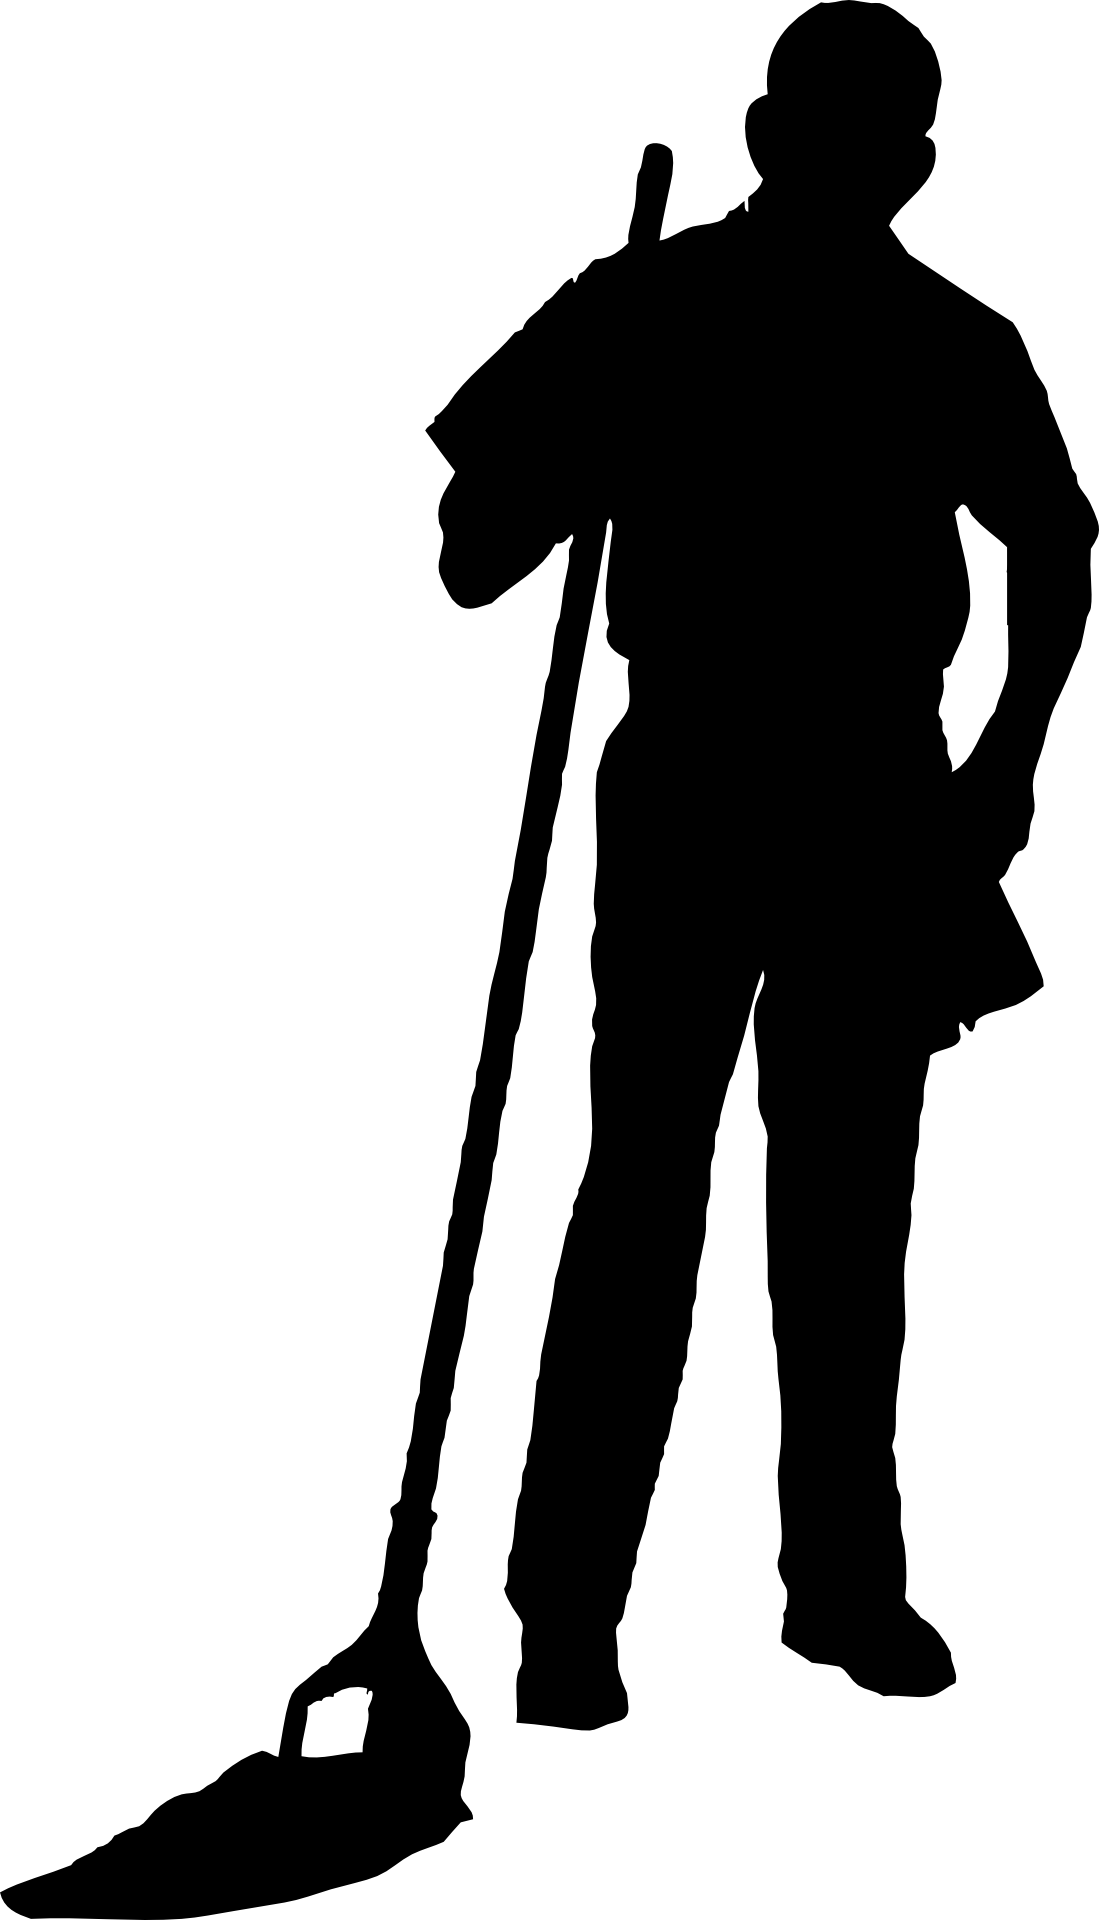 Man cleaning house clipart graphic freeuse stock Silhouette Cleaning at GetDrawings.com | Free for personal use ... graphic freeuse stock